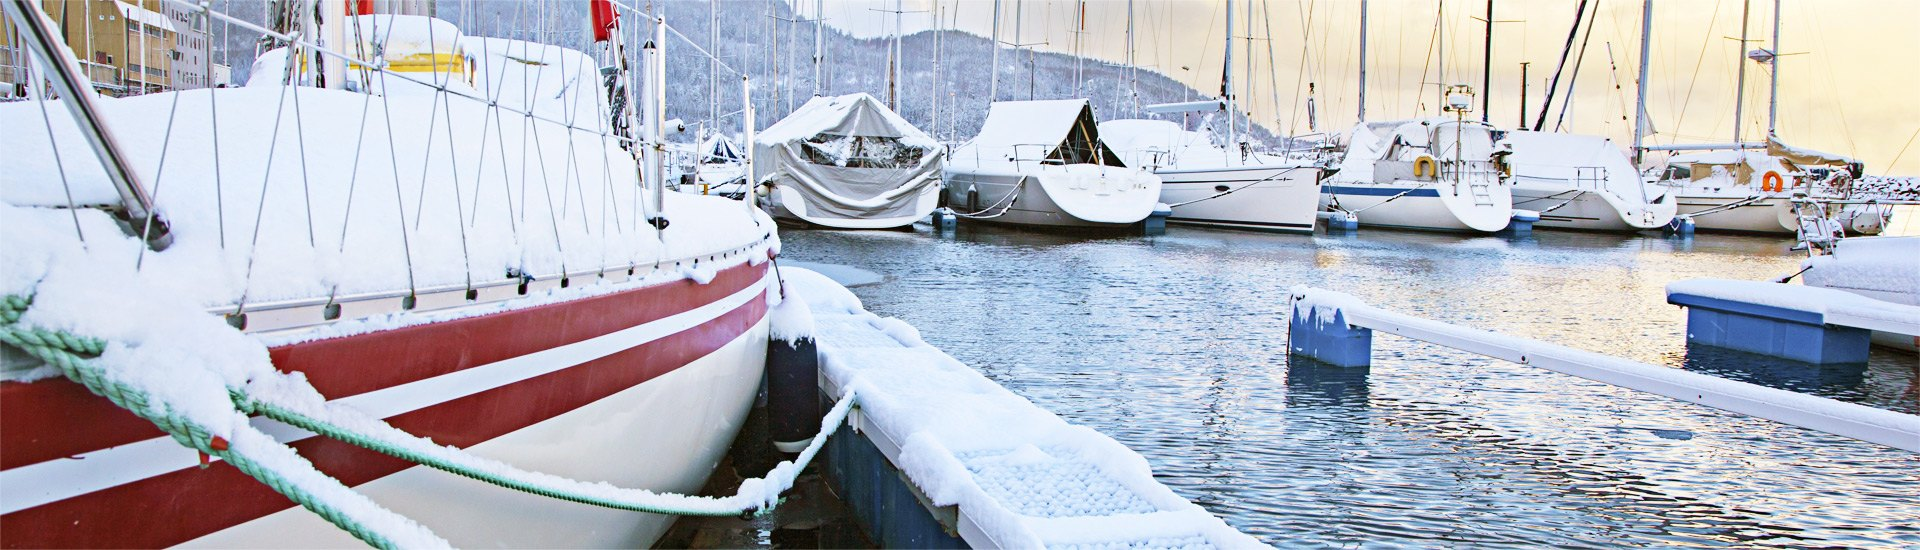 Boat Winterization | Stands, Antifreeze, Winter Covers